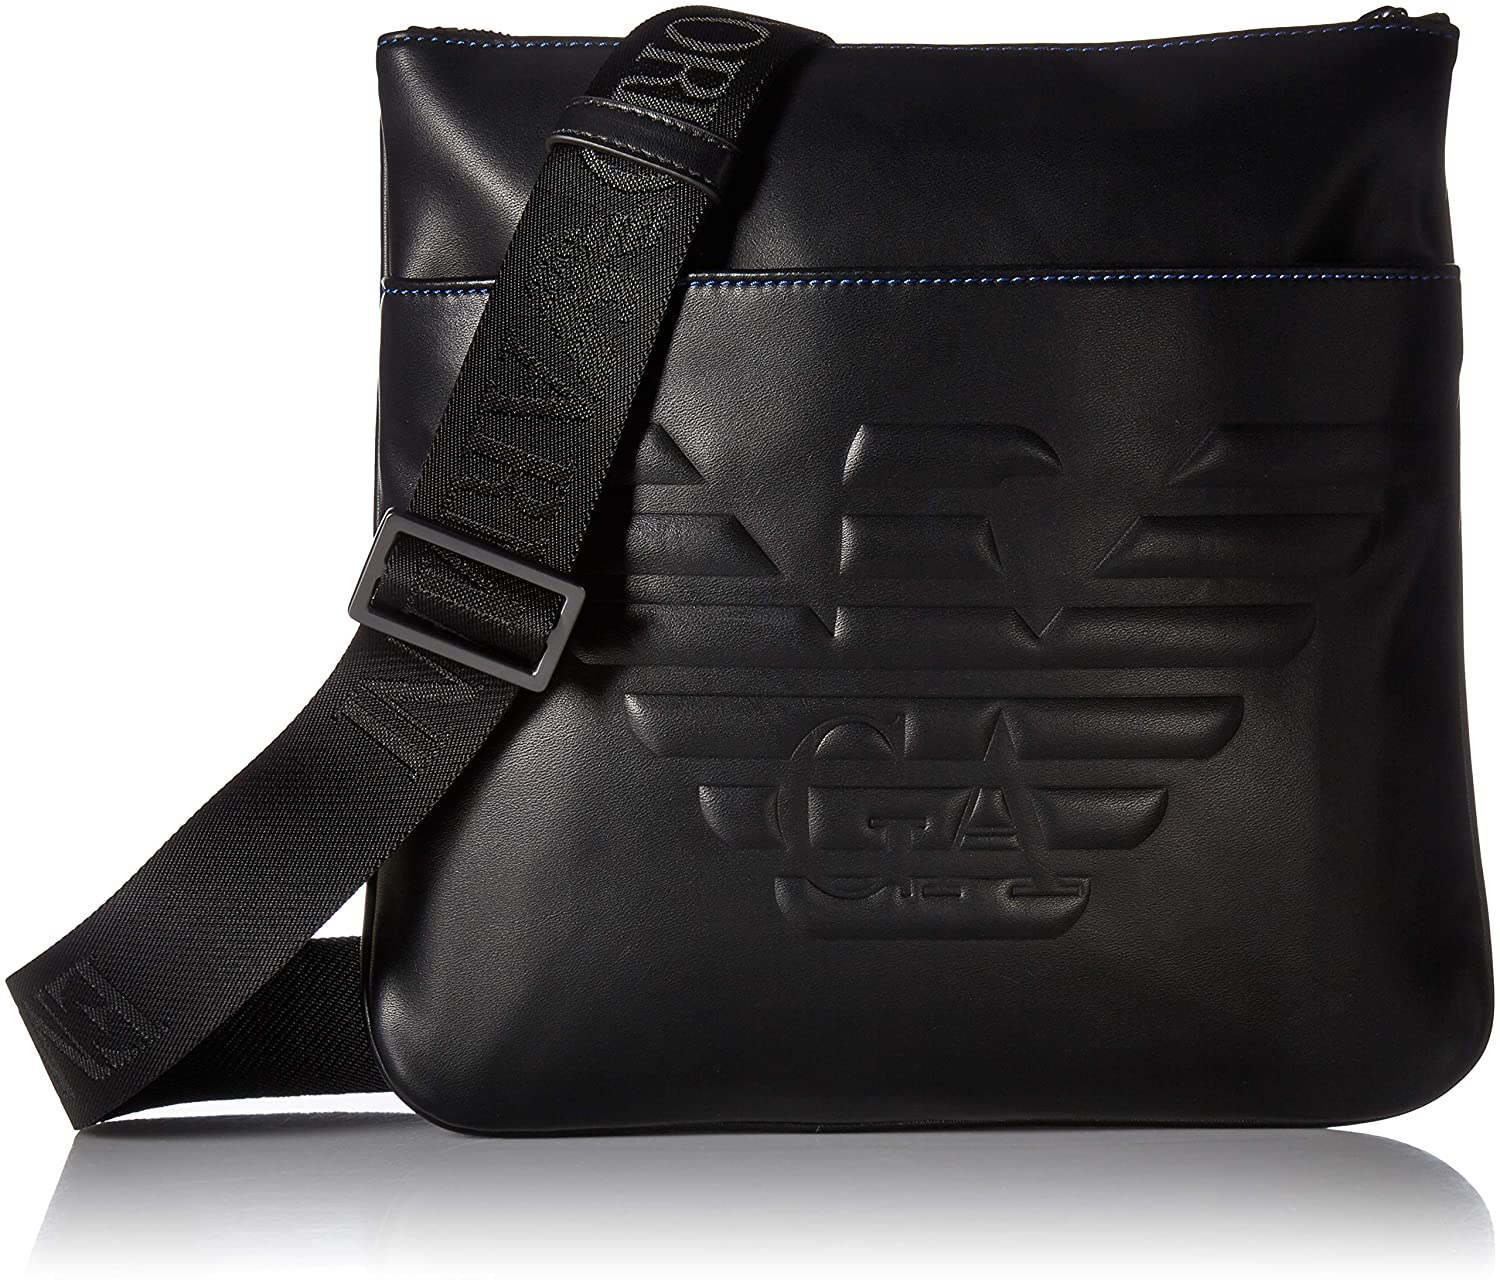 b529edfcc7676 Emporio Armani Messenger Bag with Front Pocket